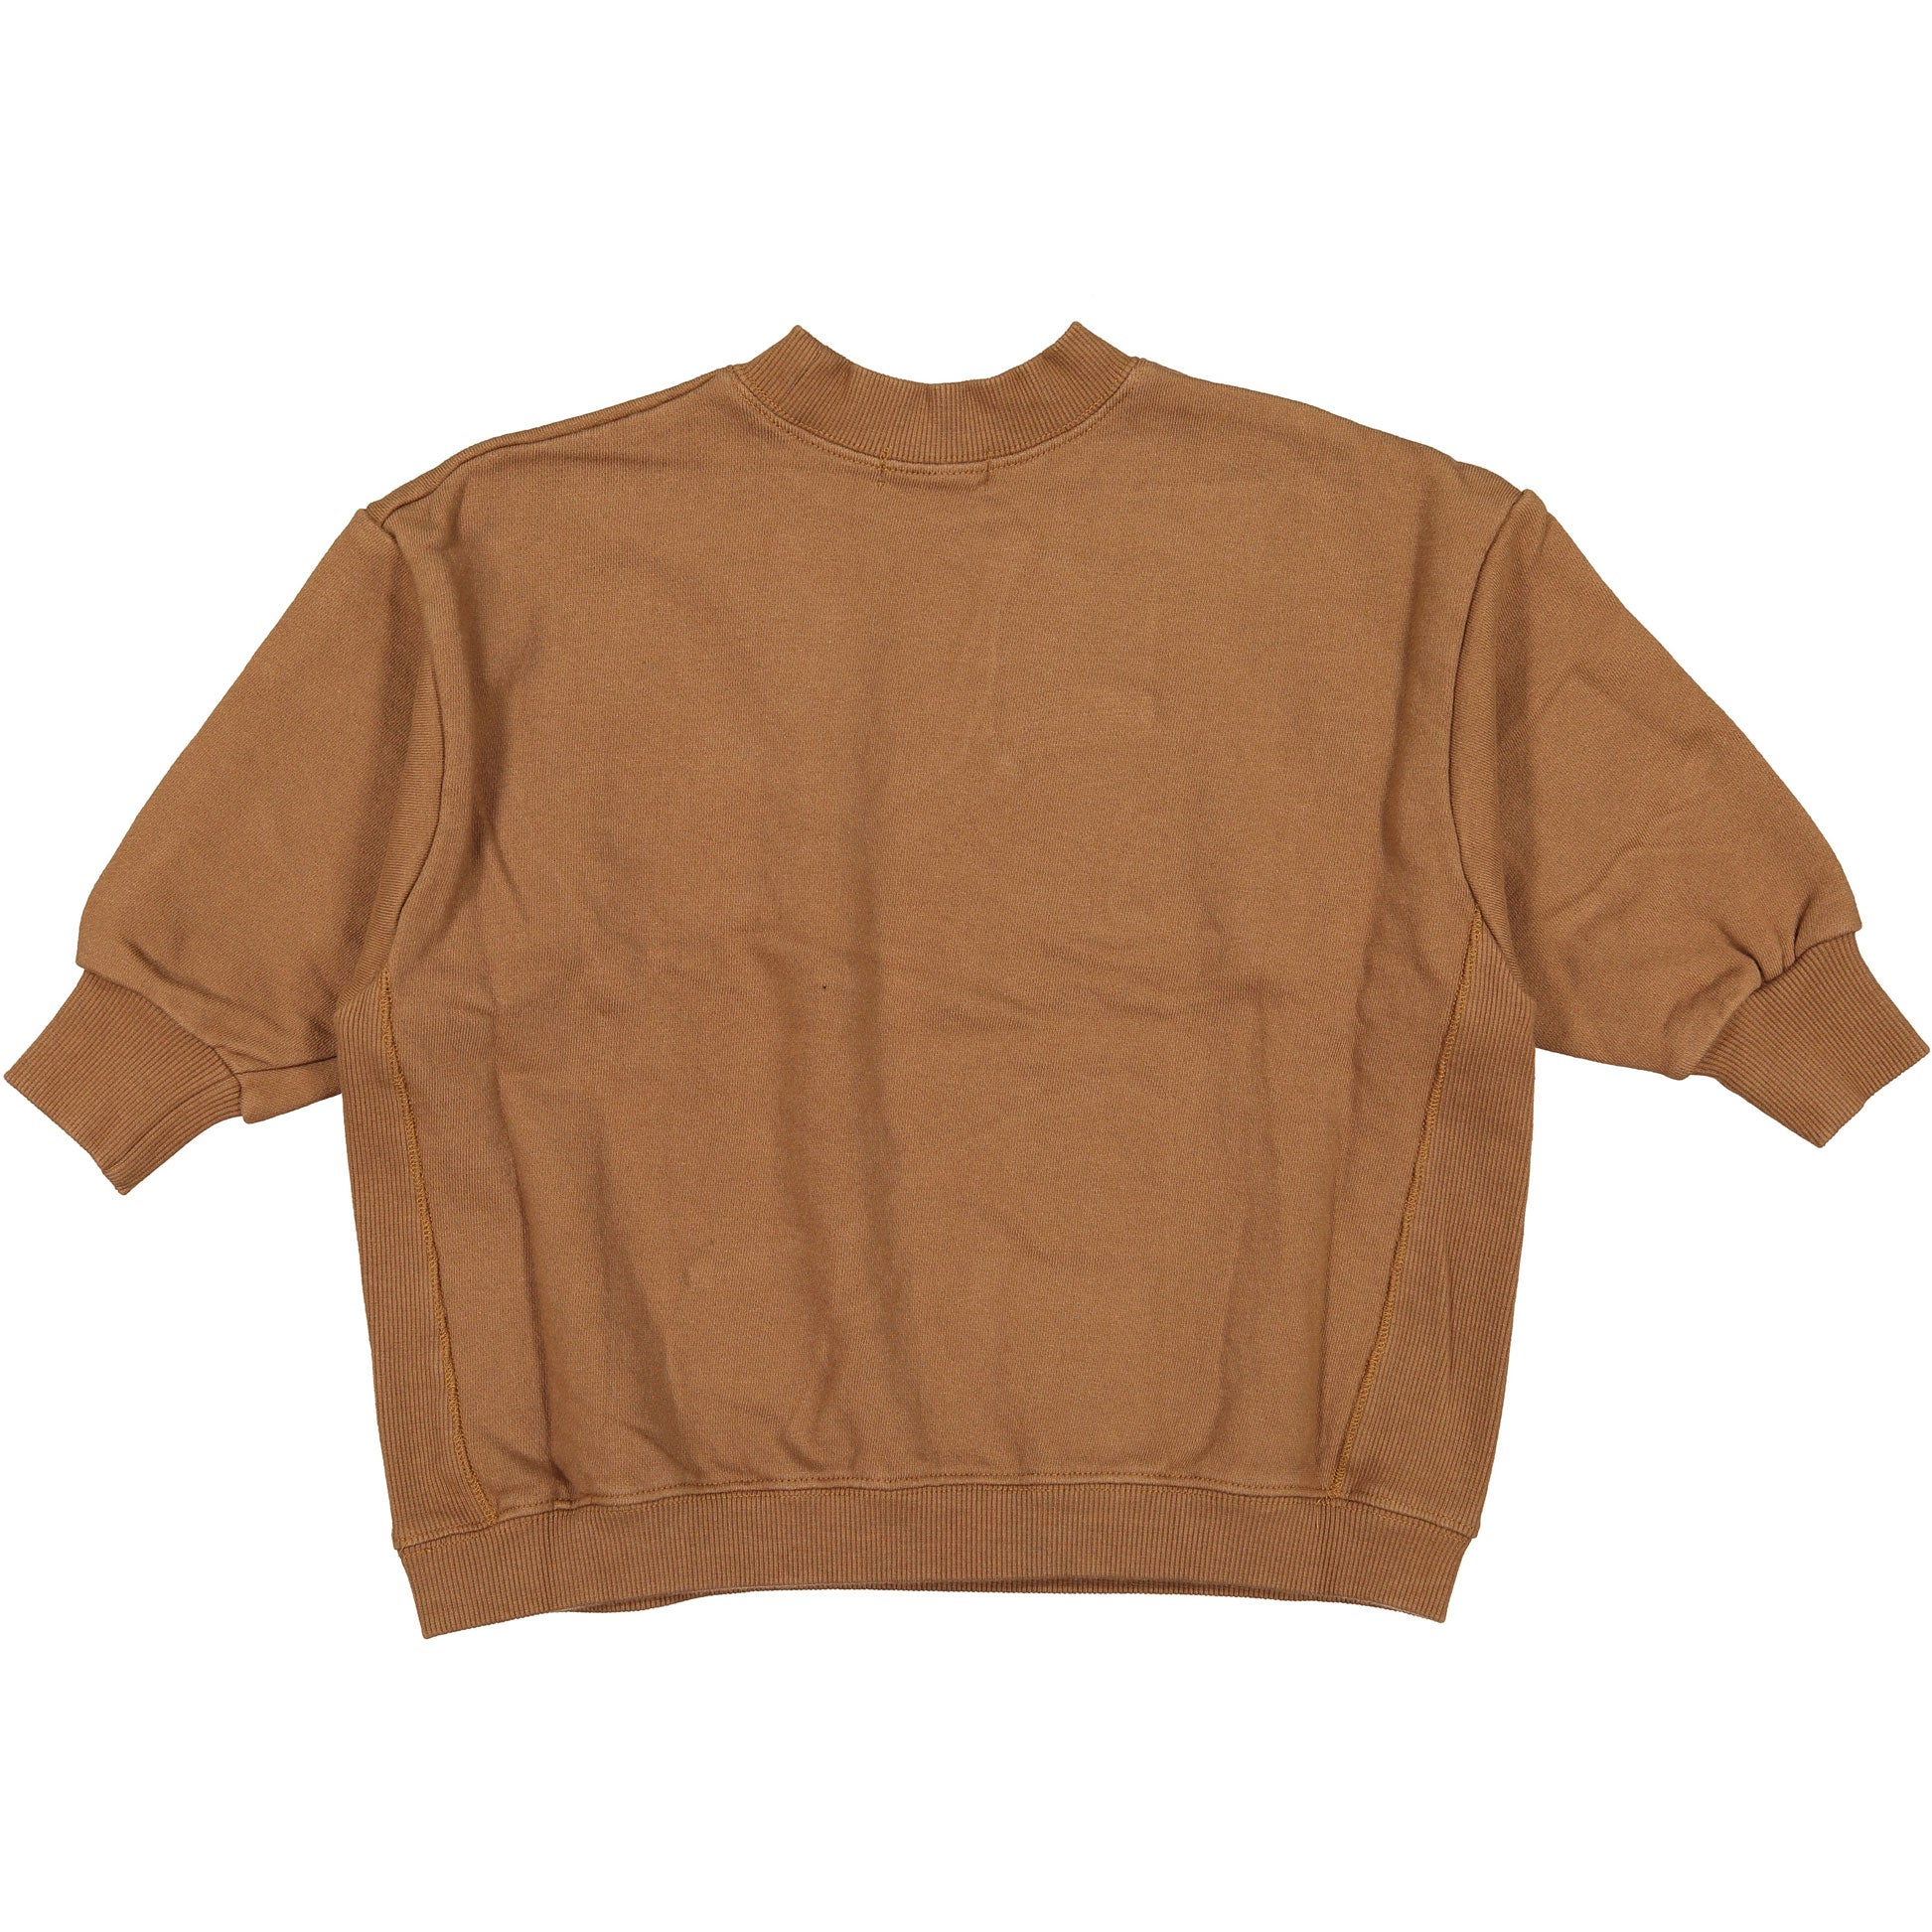 Tambere Brown Mary and Laura Sweatshirt